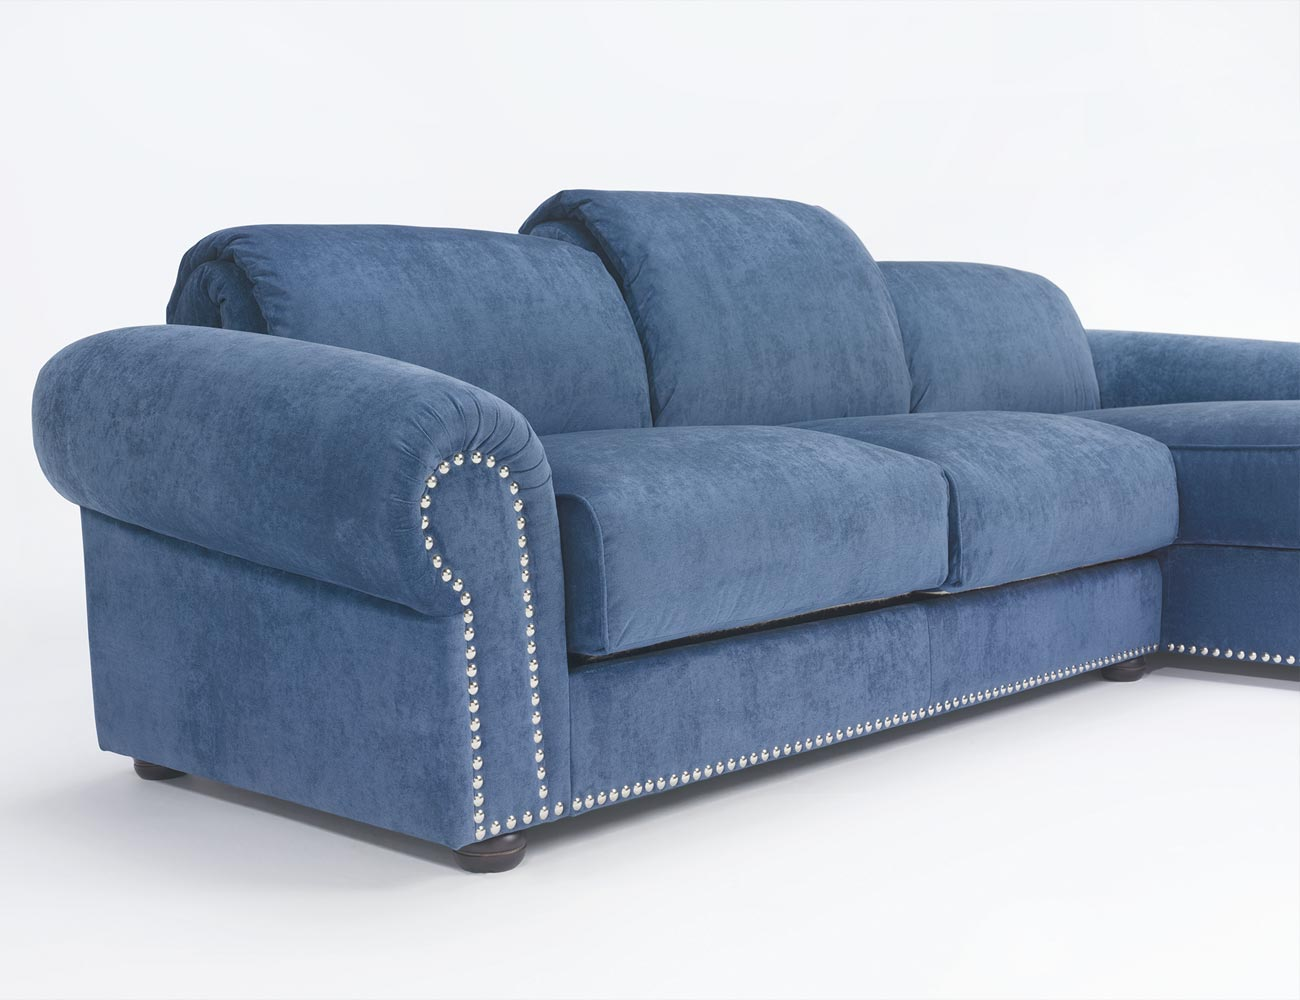 Sofa chaiselongue gran lujo decorativo azul 131